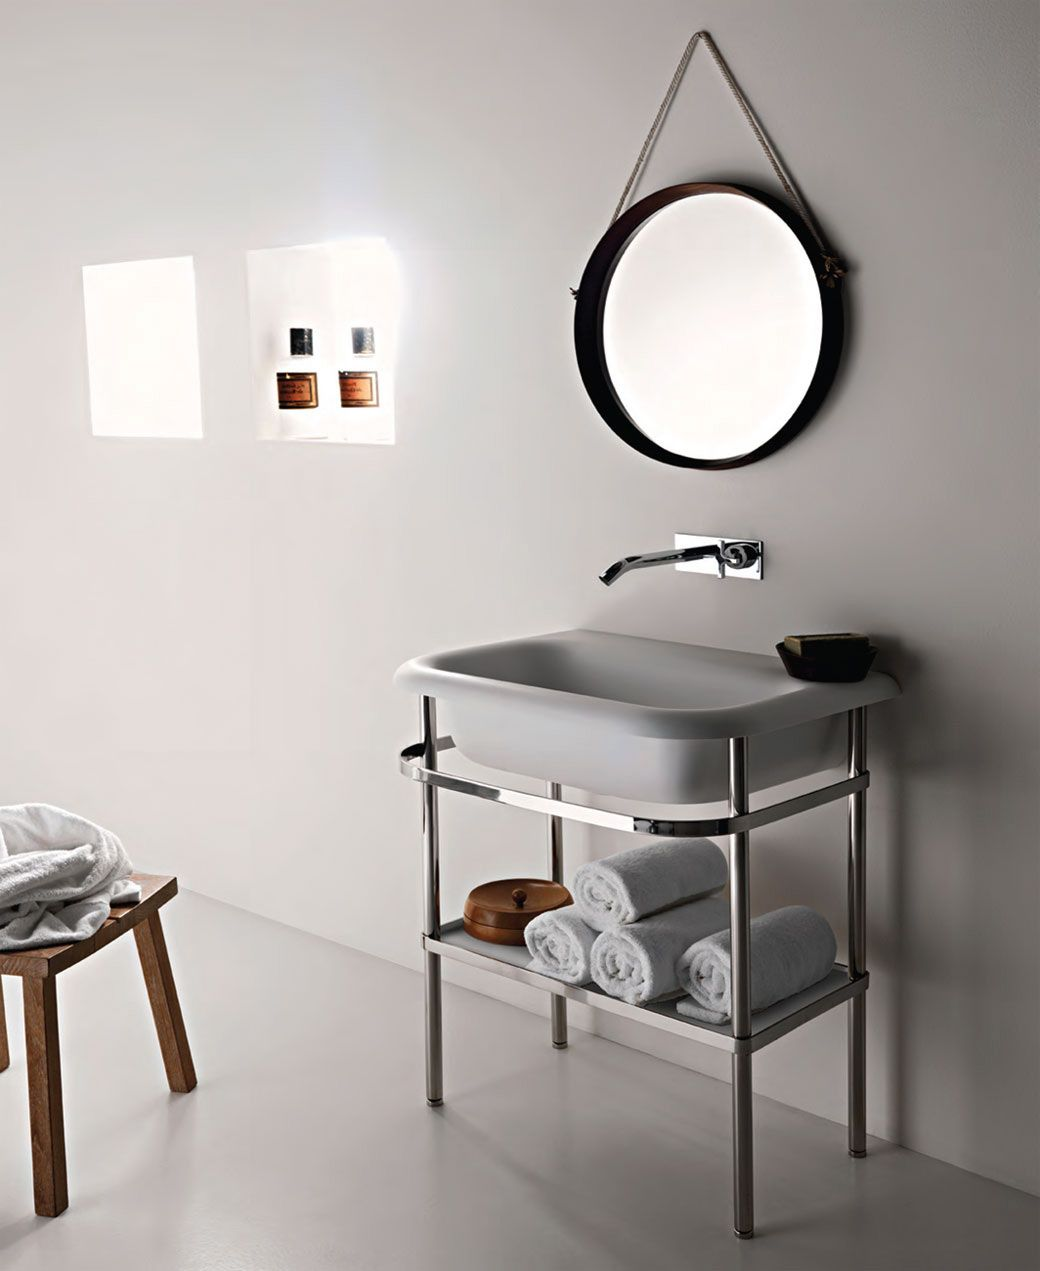 Sanitary ware, shower, bath and hydromassage tubs | Flooring ...